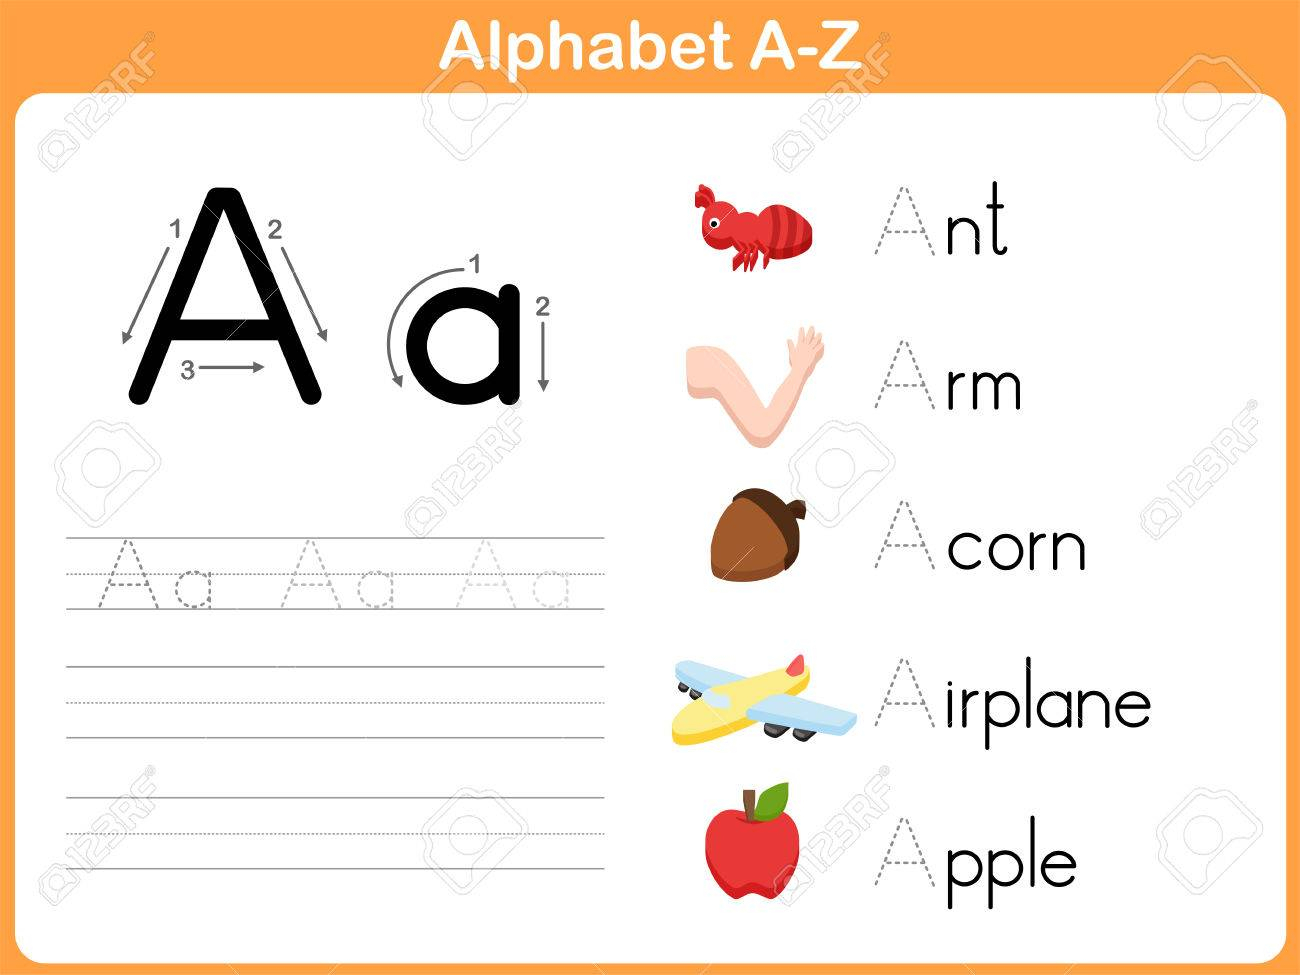 Alphabet Tracing Worksheet: Writing A-Z with Alphabet Tracing Worksheets A-Z